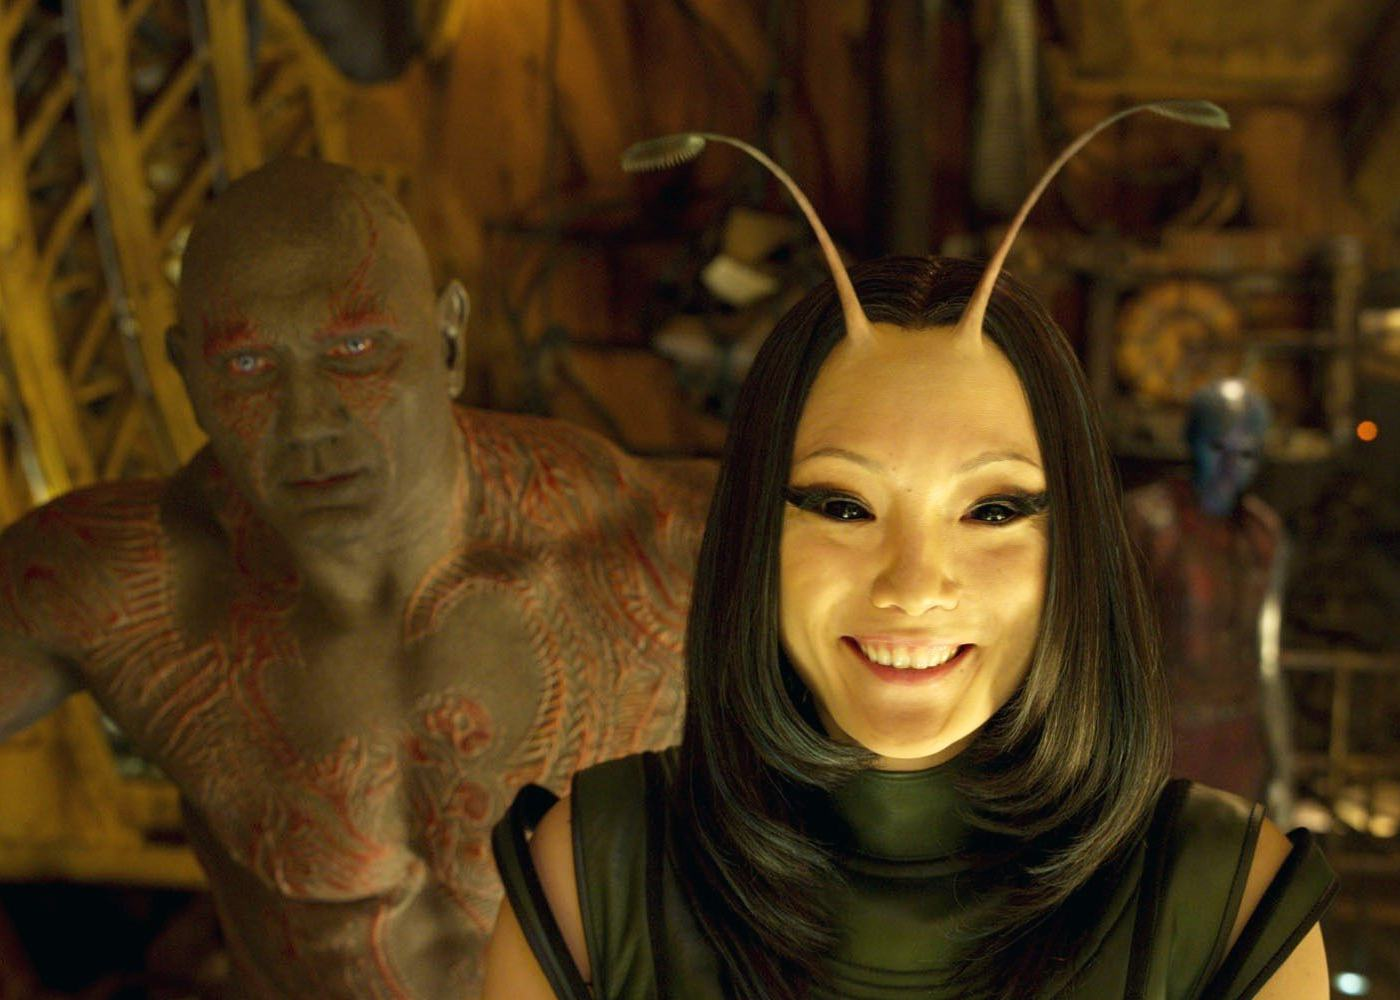 Mantis Creator Unhappy with Guardians Vol. 2 Portrayal